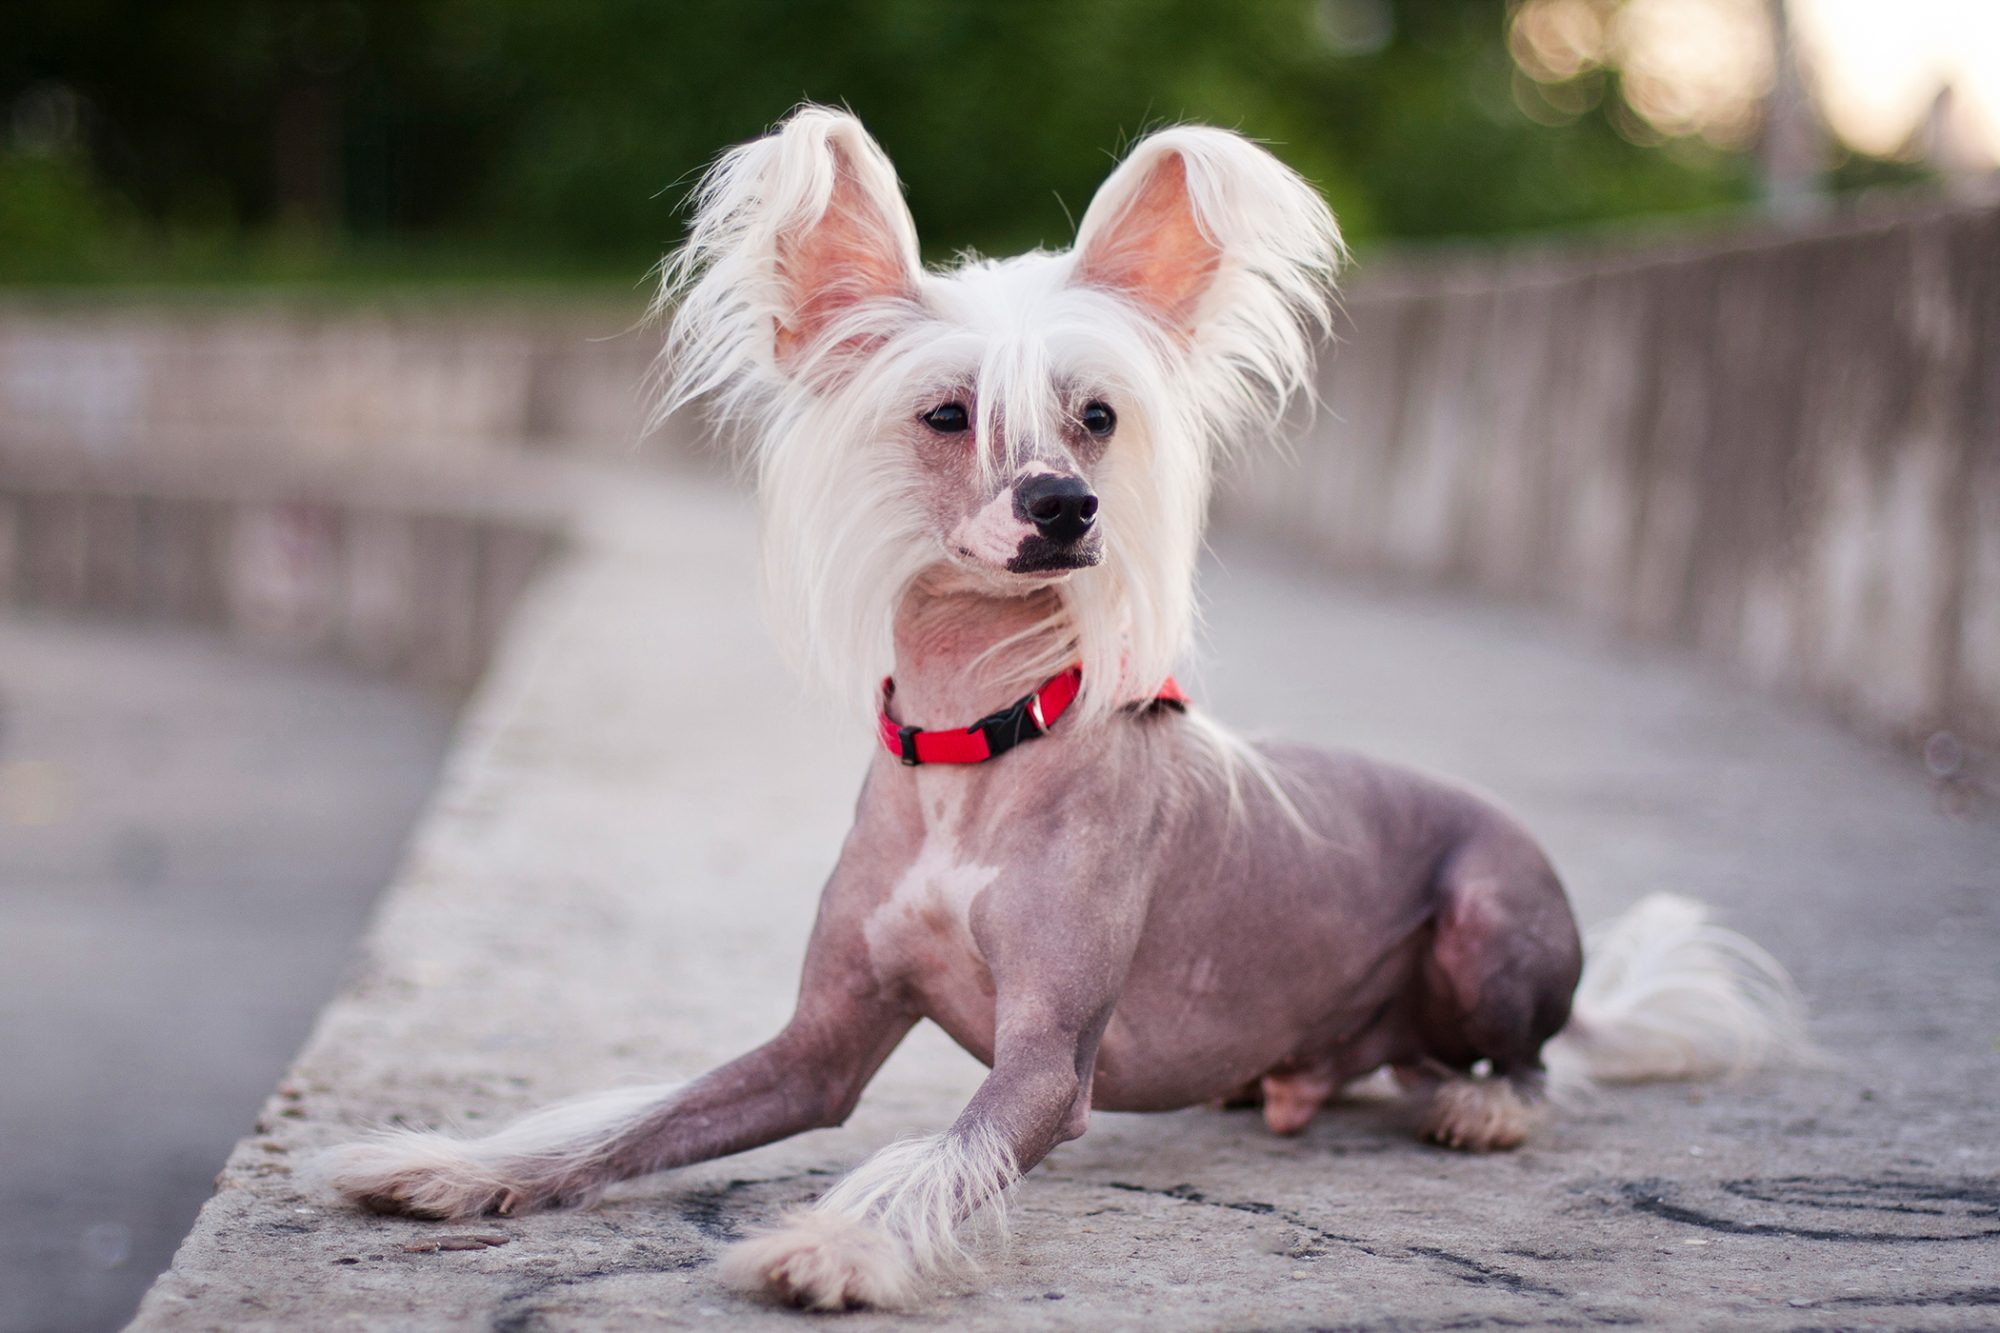 Chinese Crested dog posing on cement